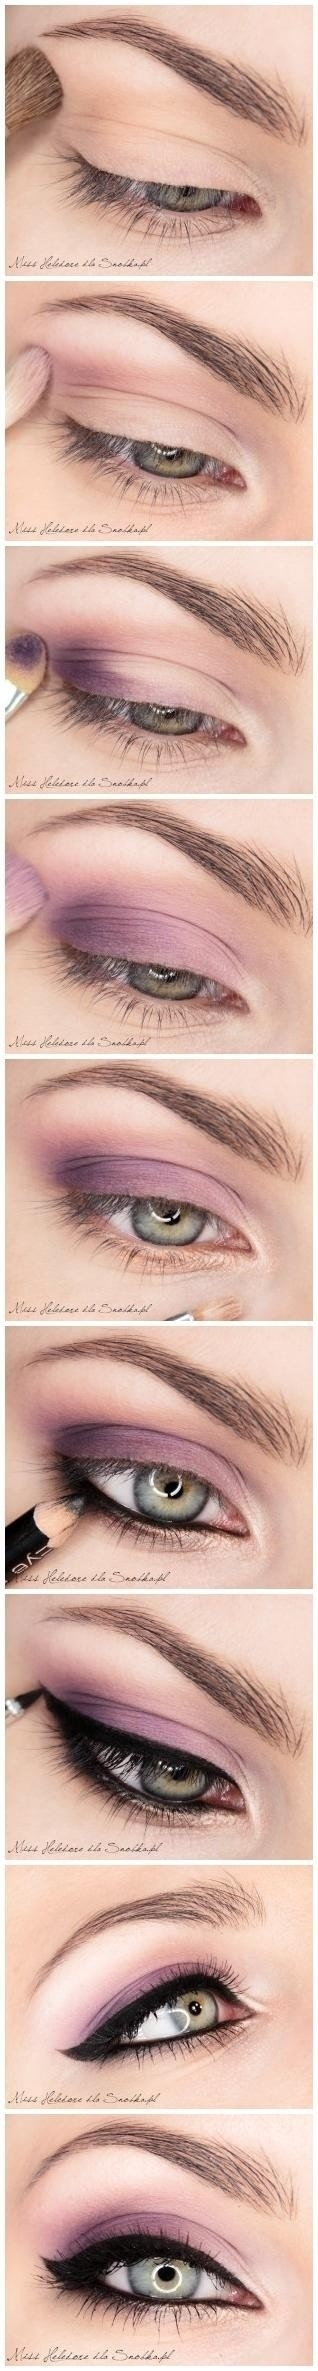 How to make make up like this